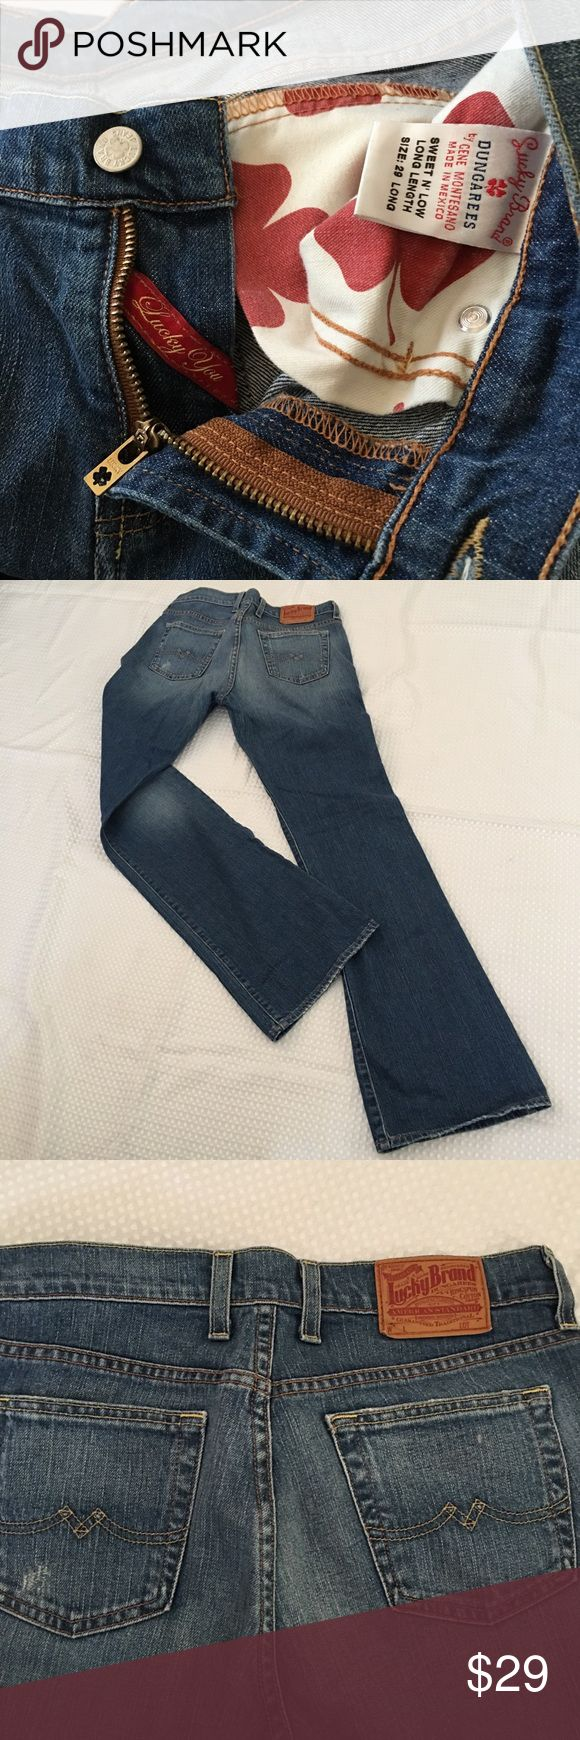 Lucky brand dungarees jeans. Sweet N' Low. 29 L Red clover pockets, sweet and low, size 29 long, inseam 33 1/2, flare, distress on pockets and bottom legs.  Vintage.  EUC no holes or stains. Lucky Brand Jeans Flare & Wide Leg